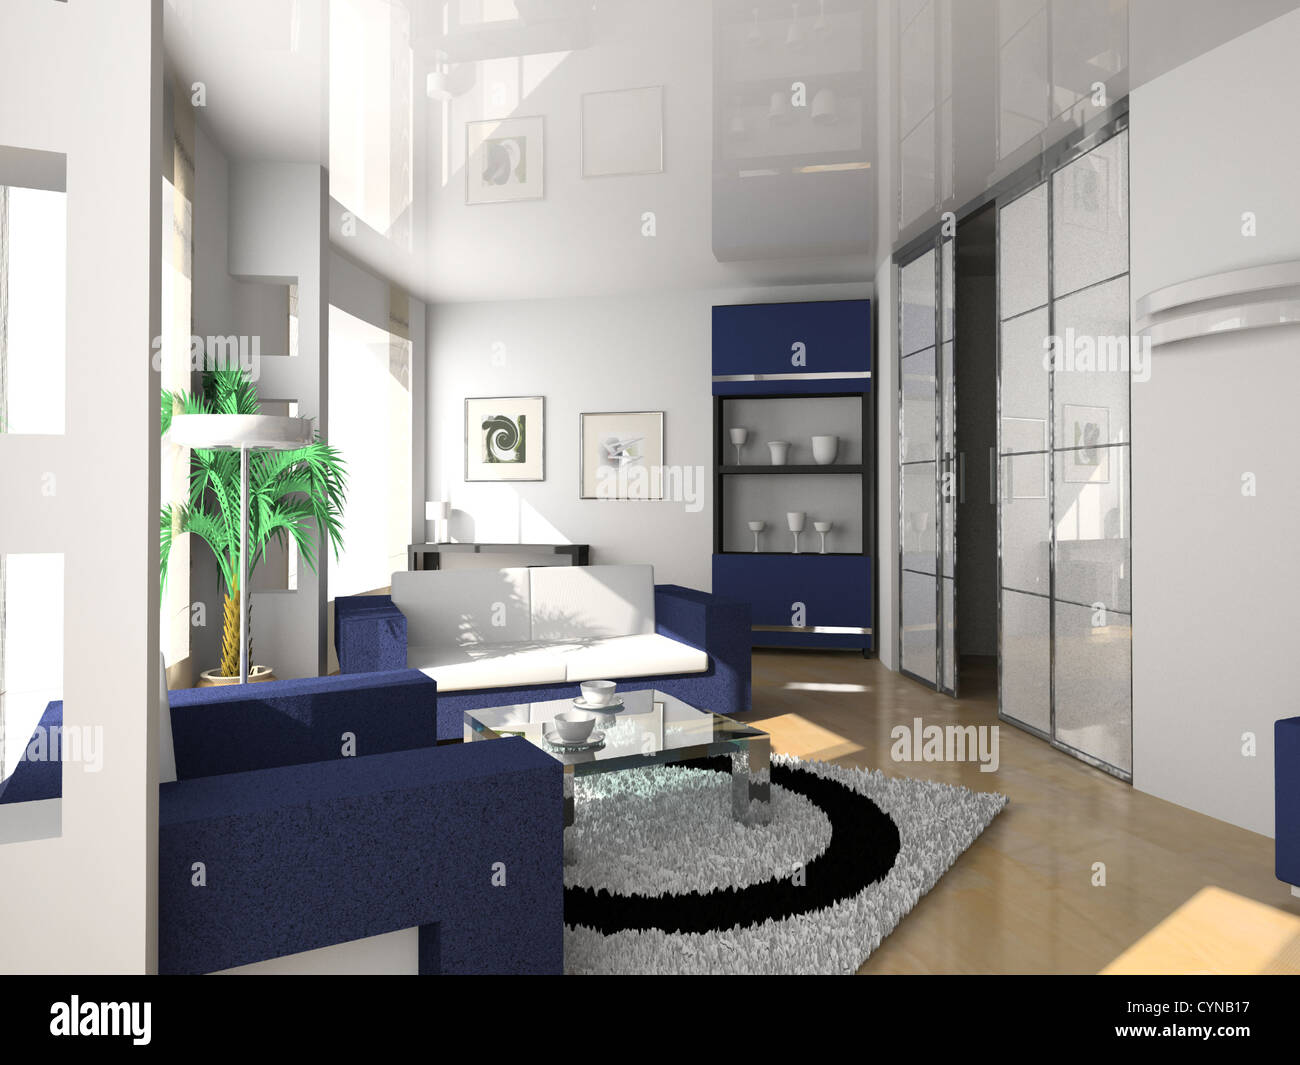 modern hotel interior design in modern style privat apartment 3d rh alamy com modern hotel style bathrooms modern style hotel london